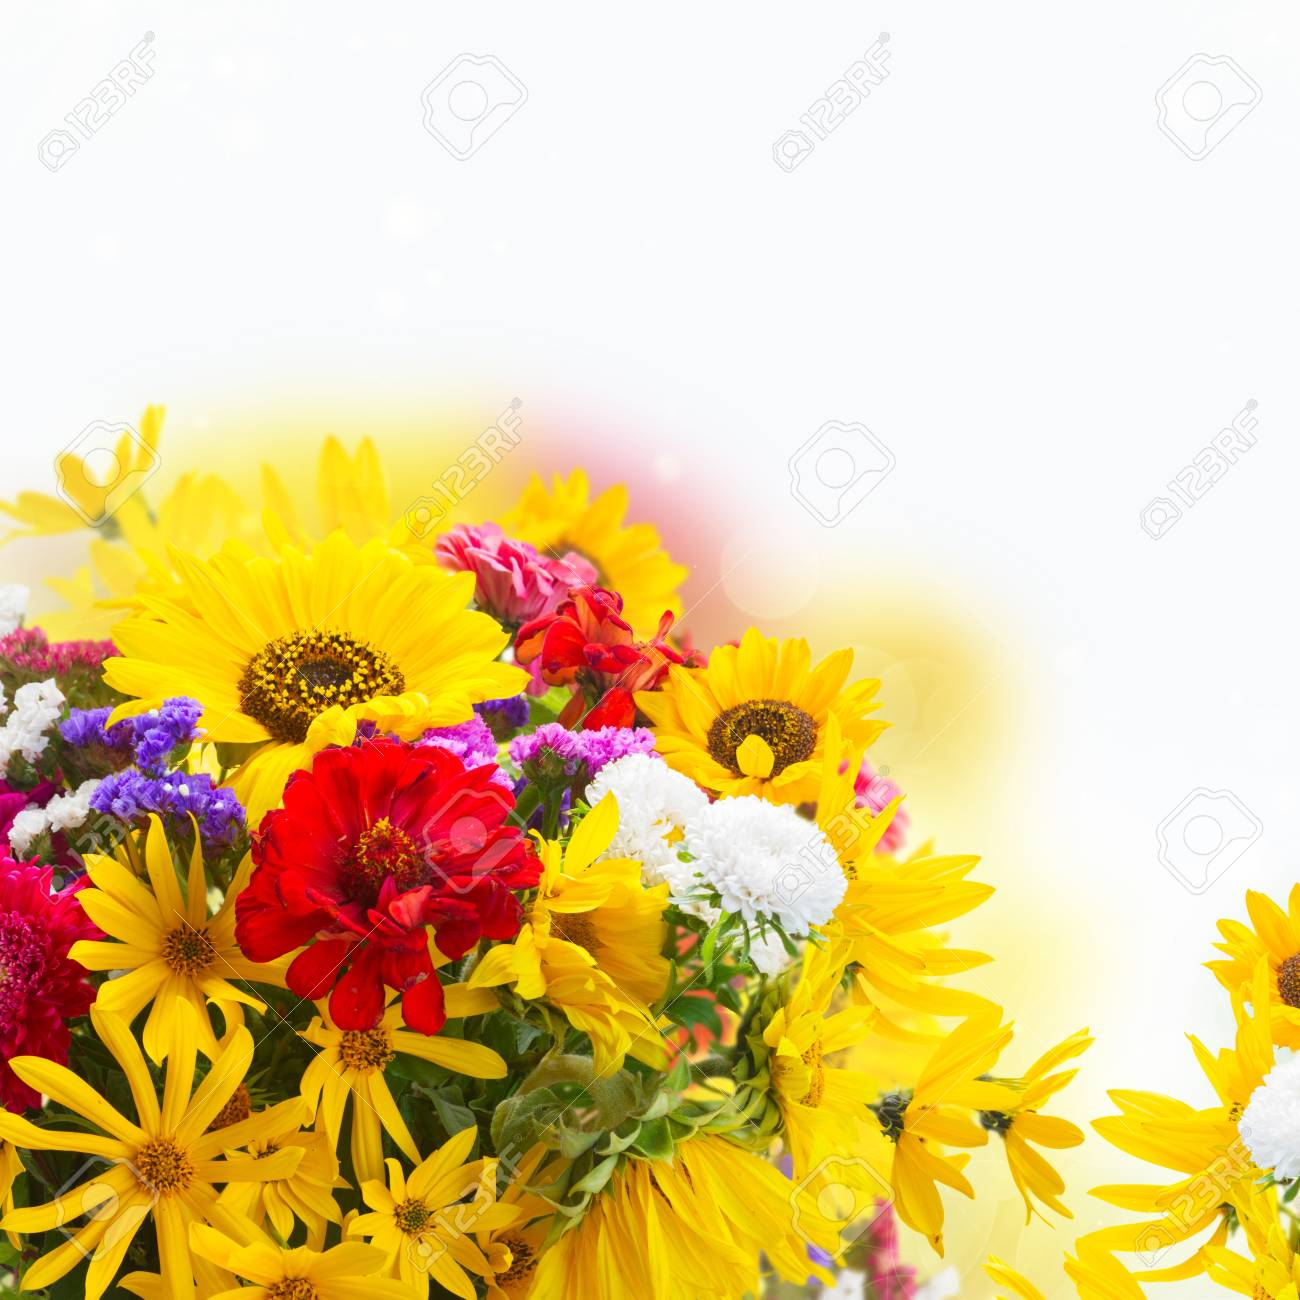 Bright Fresh Fall Bouquet Flowers Over White Background Stock Photo Picture And Royalty Free Image Image 83932187